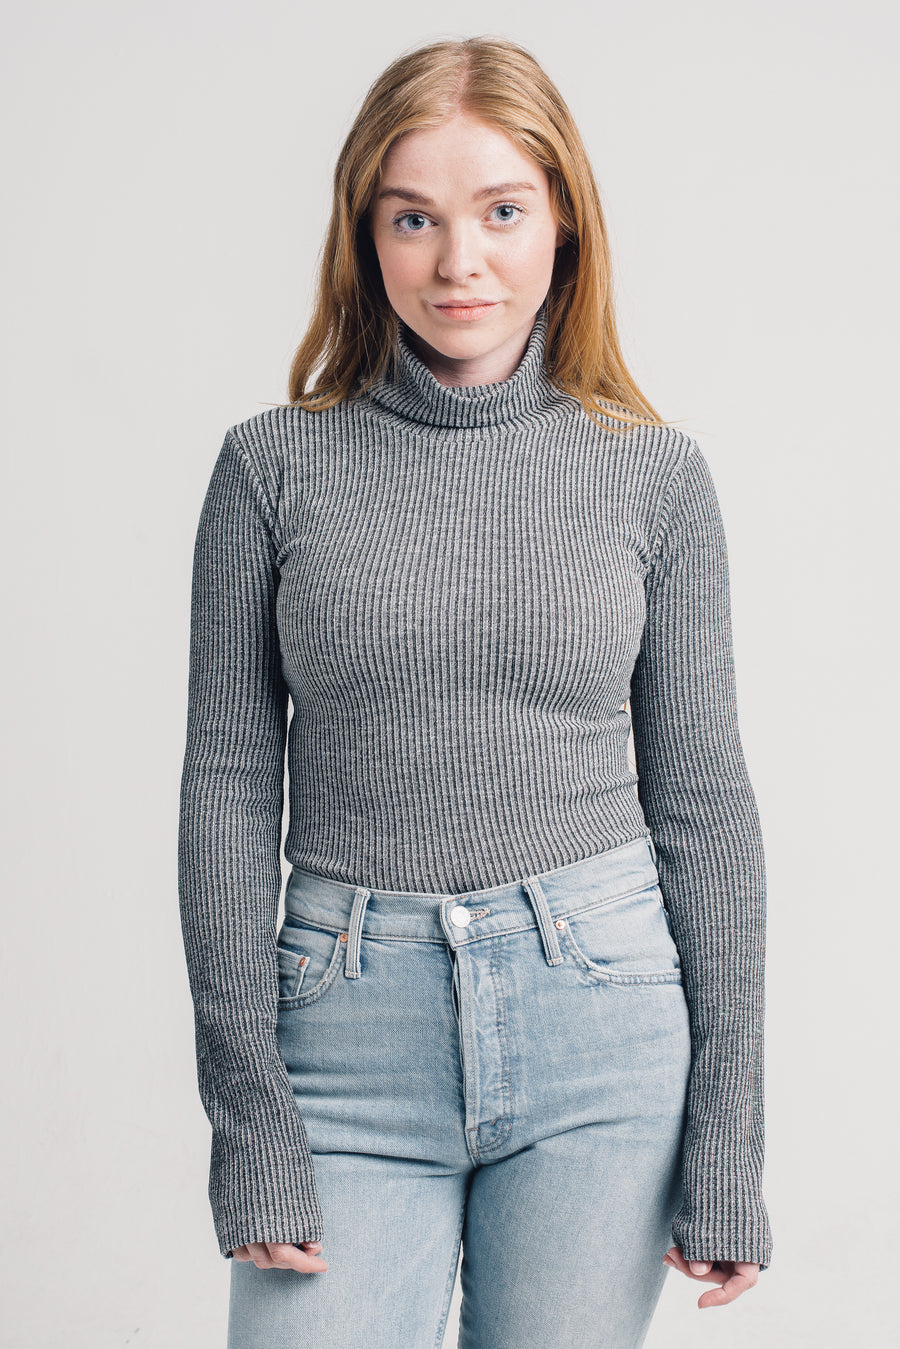 erika turtleneck black heather knot sisters | pipe and row boutique seattle